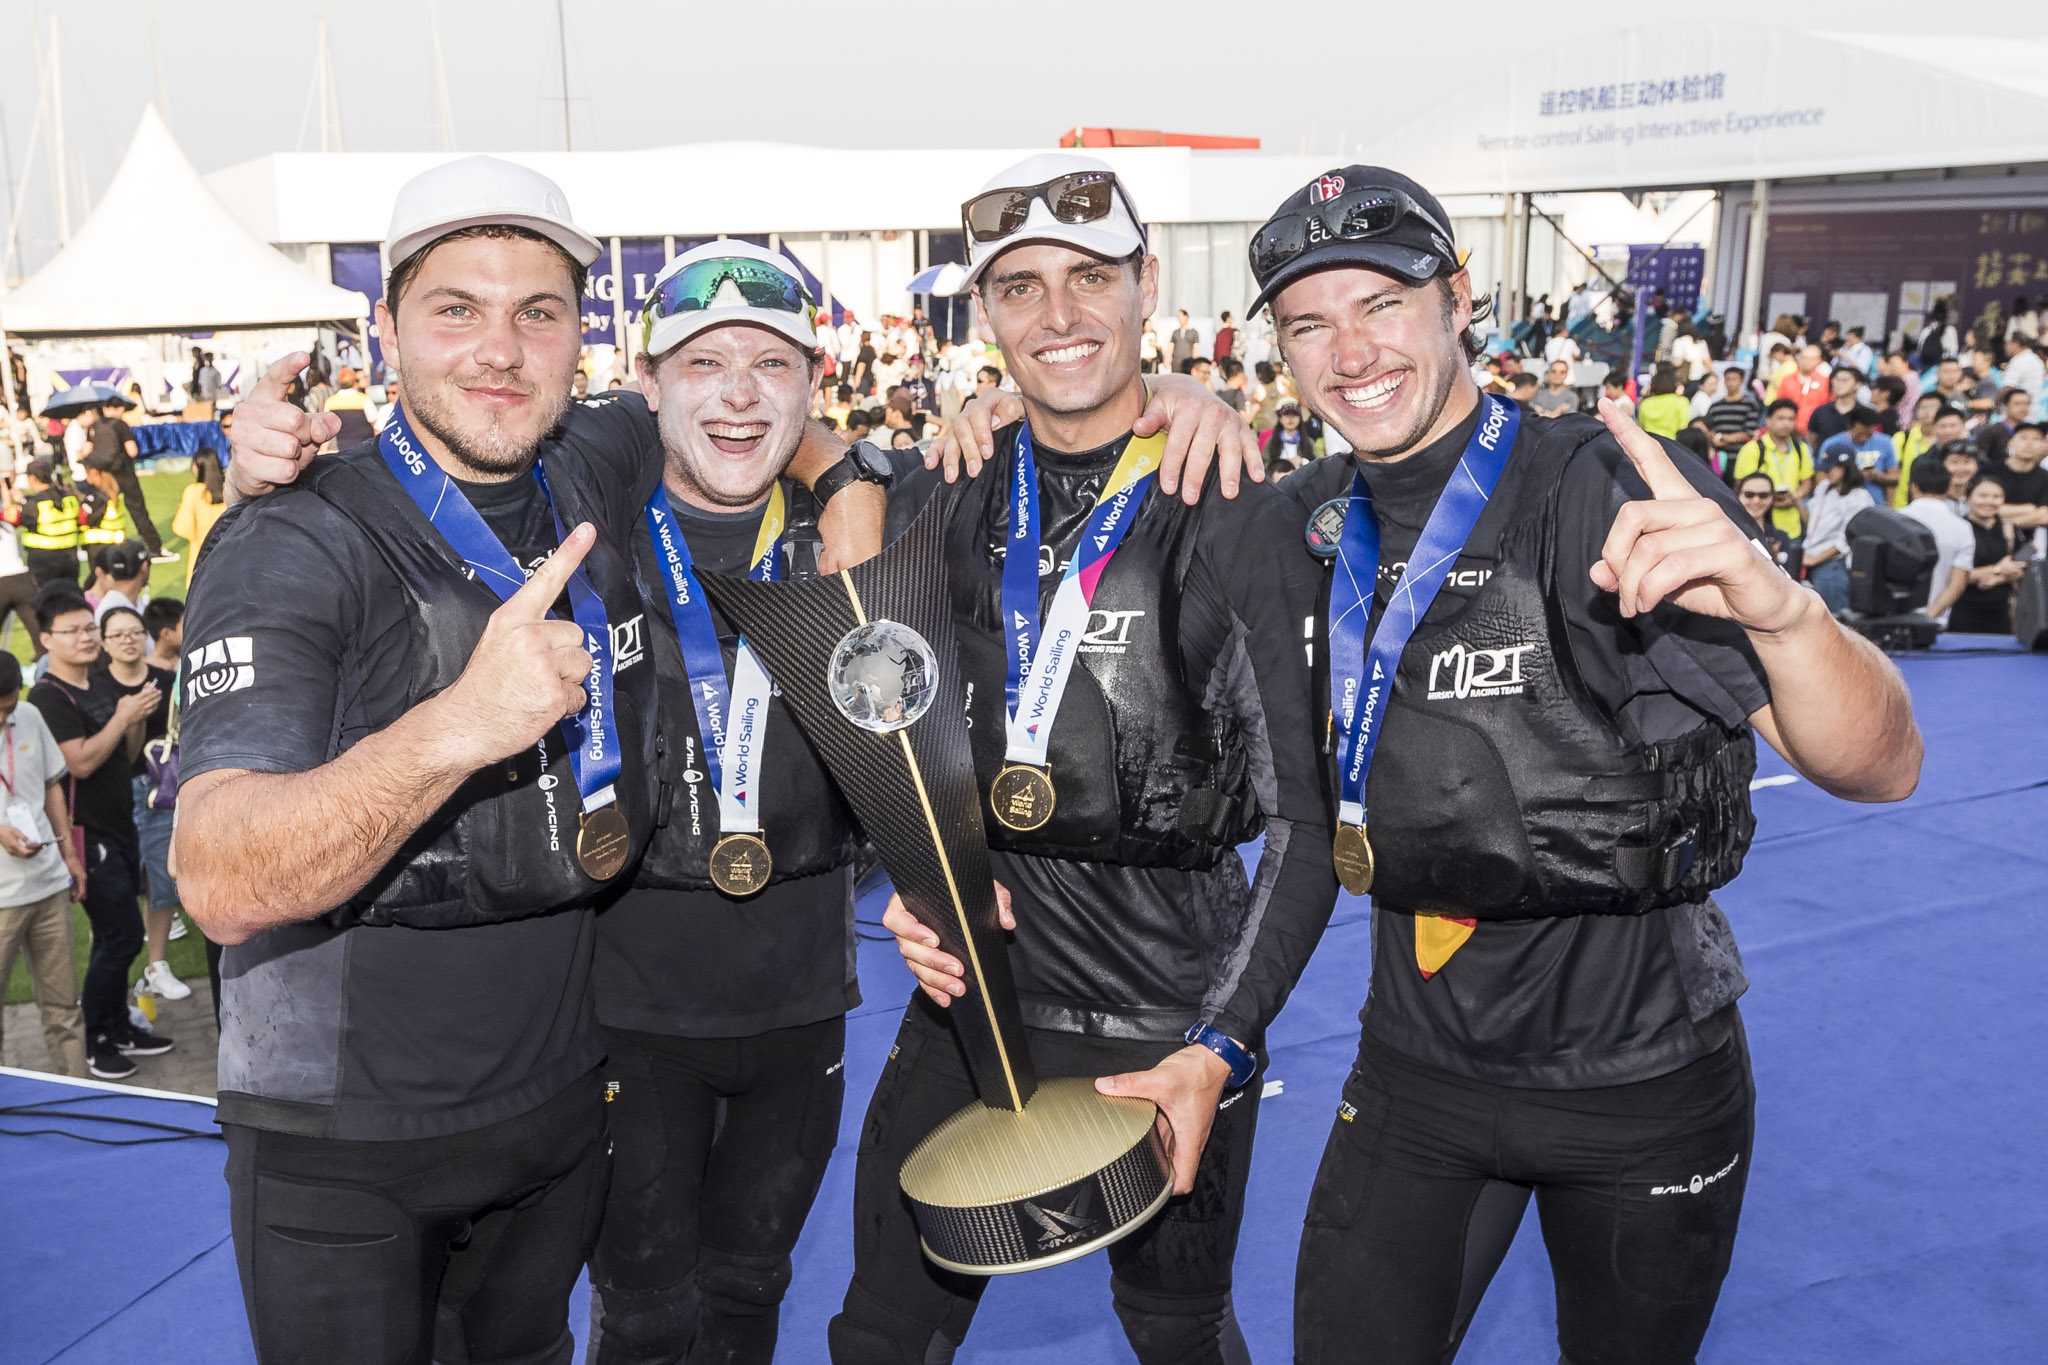 Torvar Mirsky (second from right) and his crew celebrate their world championship. Photo Lloyd Images.